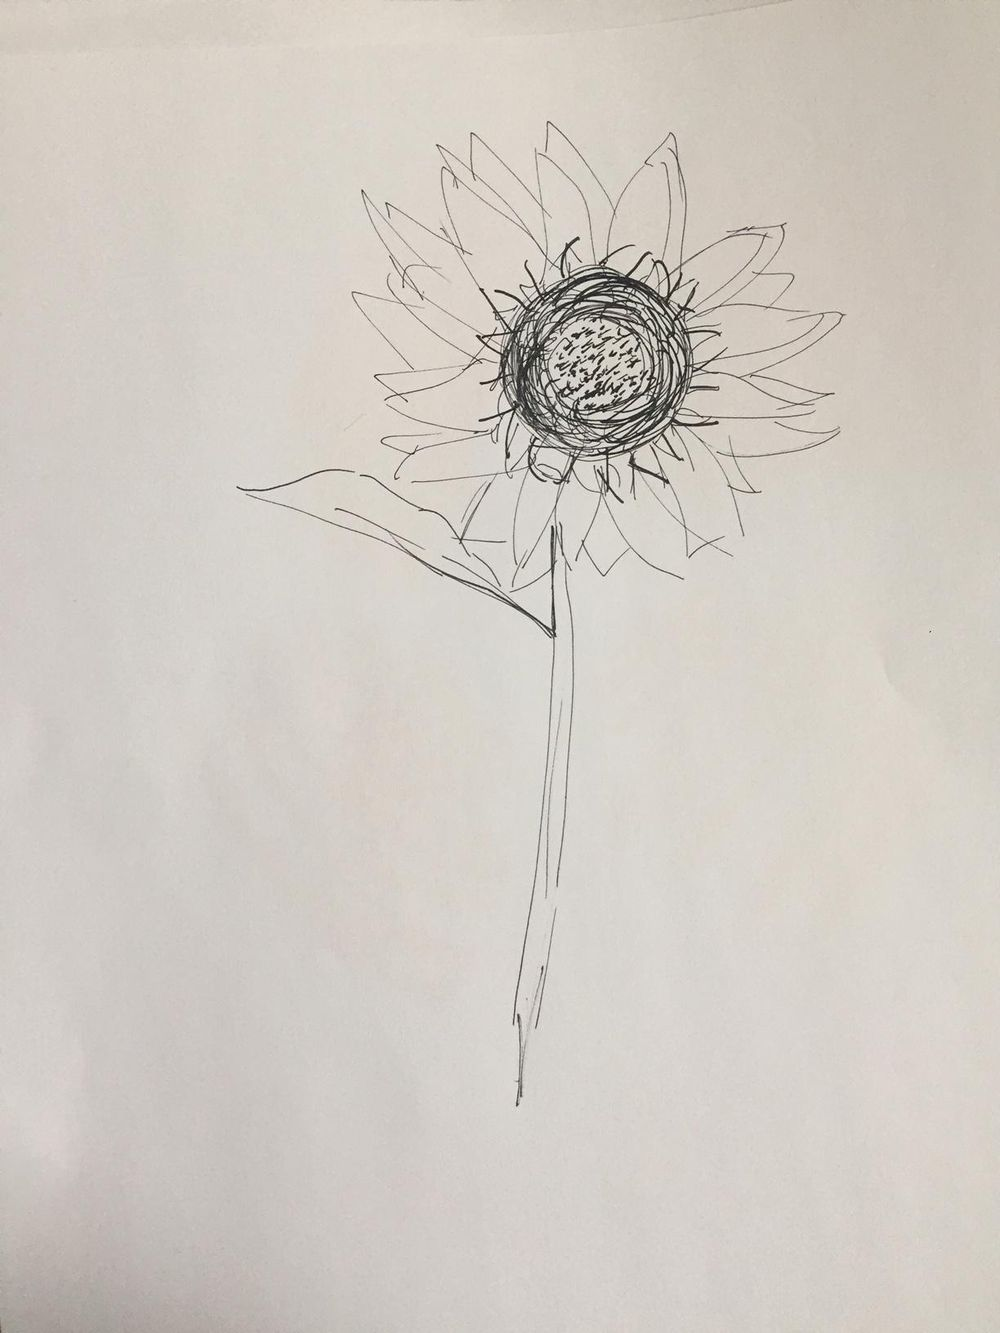 Sunflower in ink - image 2 - student project